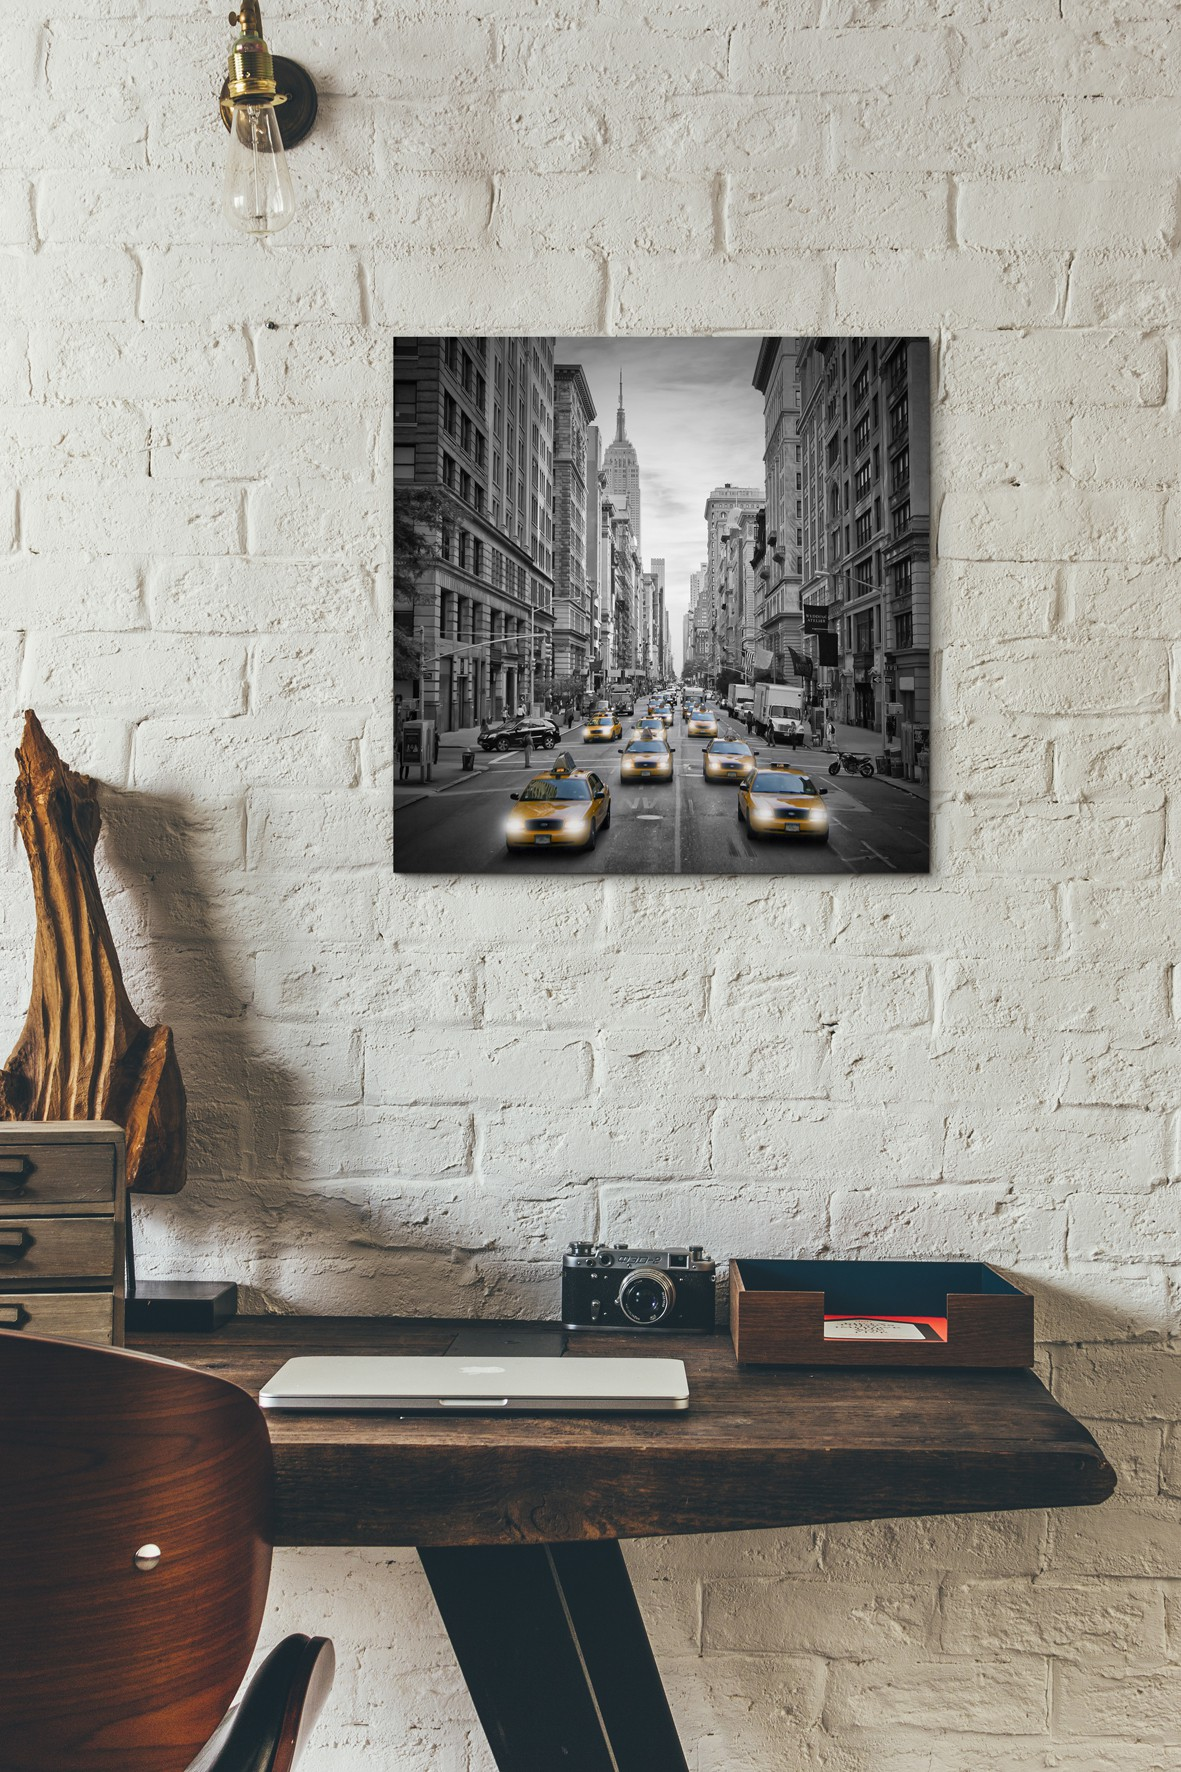 5th Avenue NYC Traffic - OhMyPrints Onlineshop